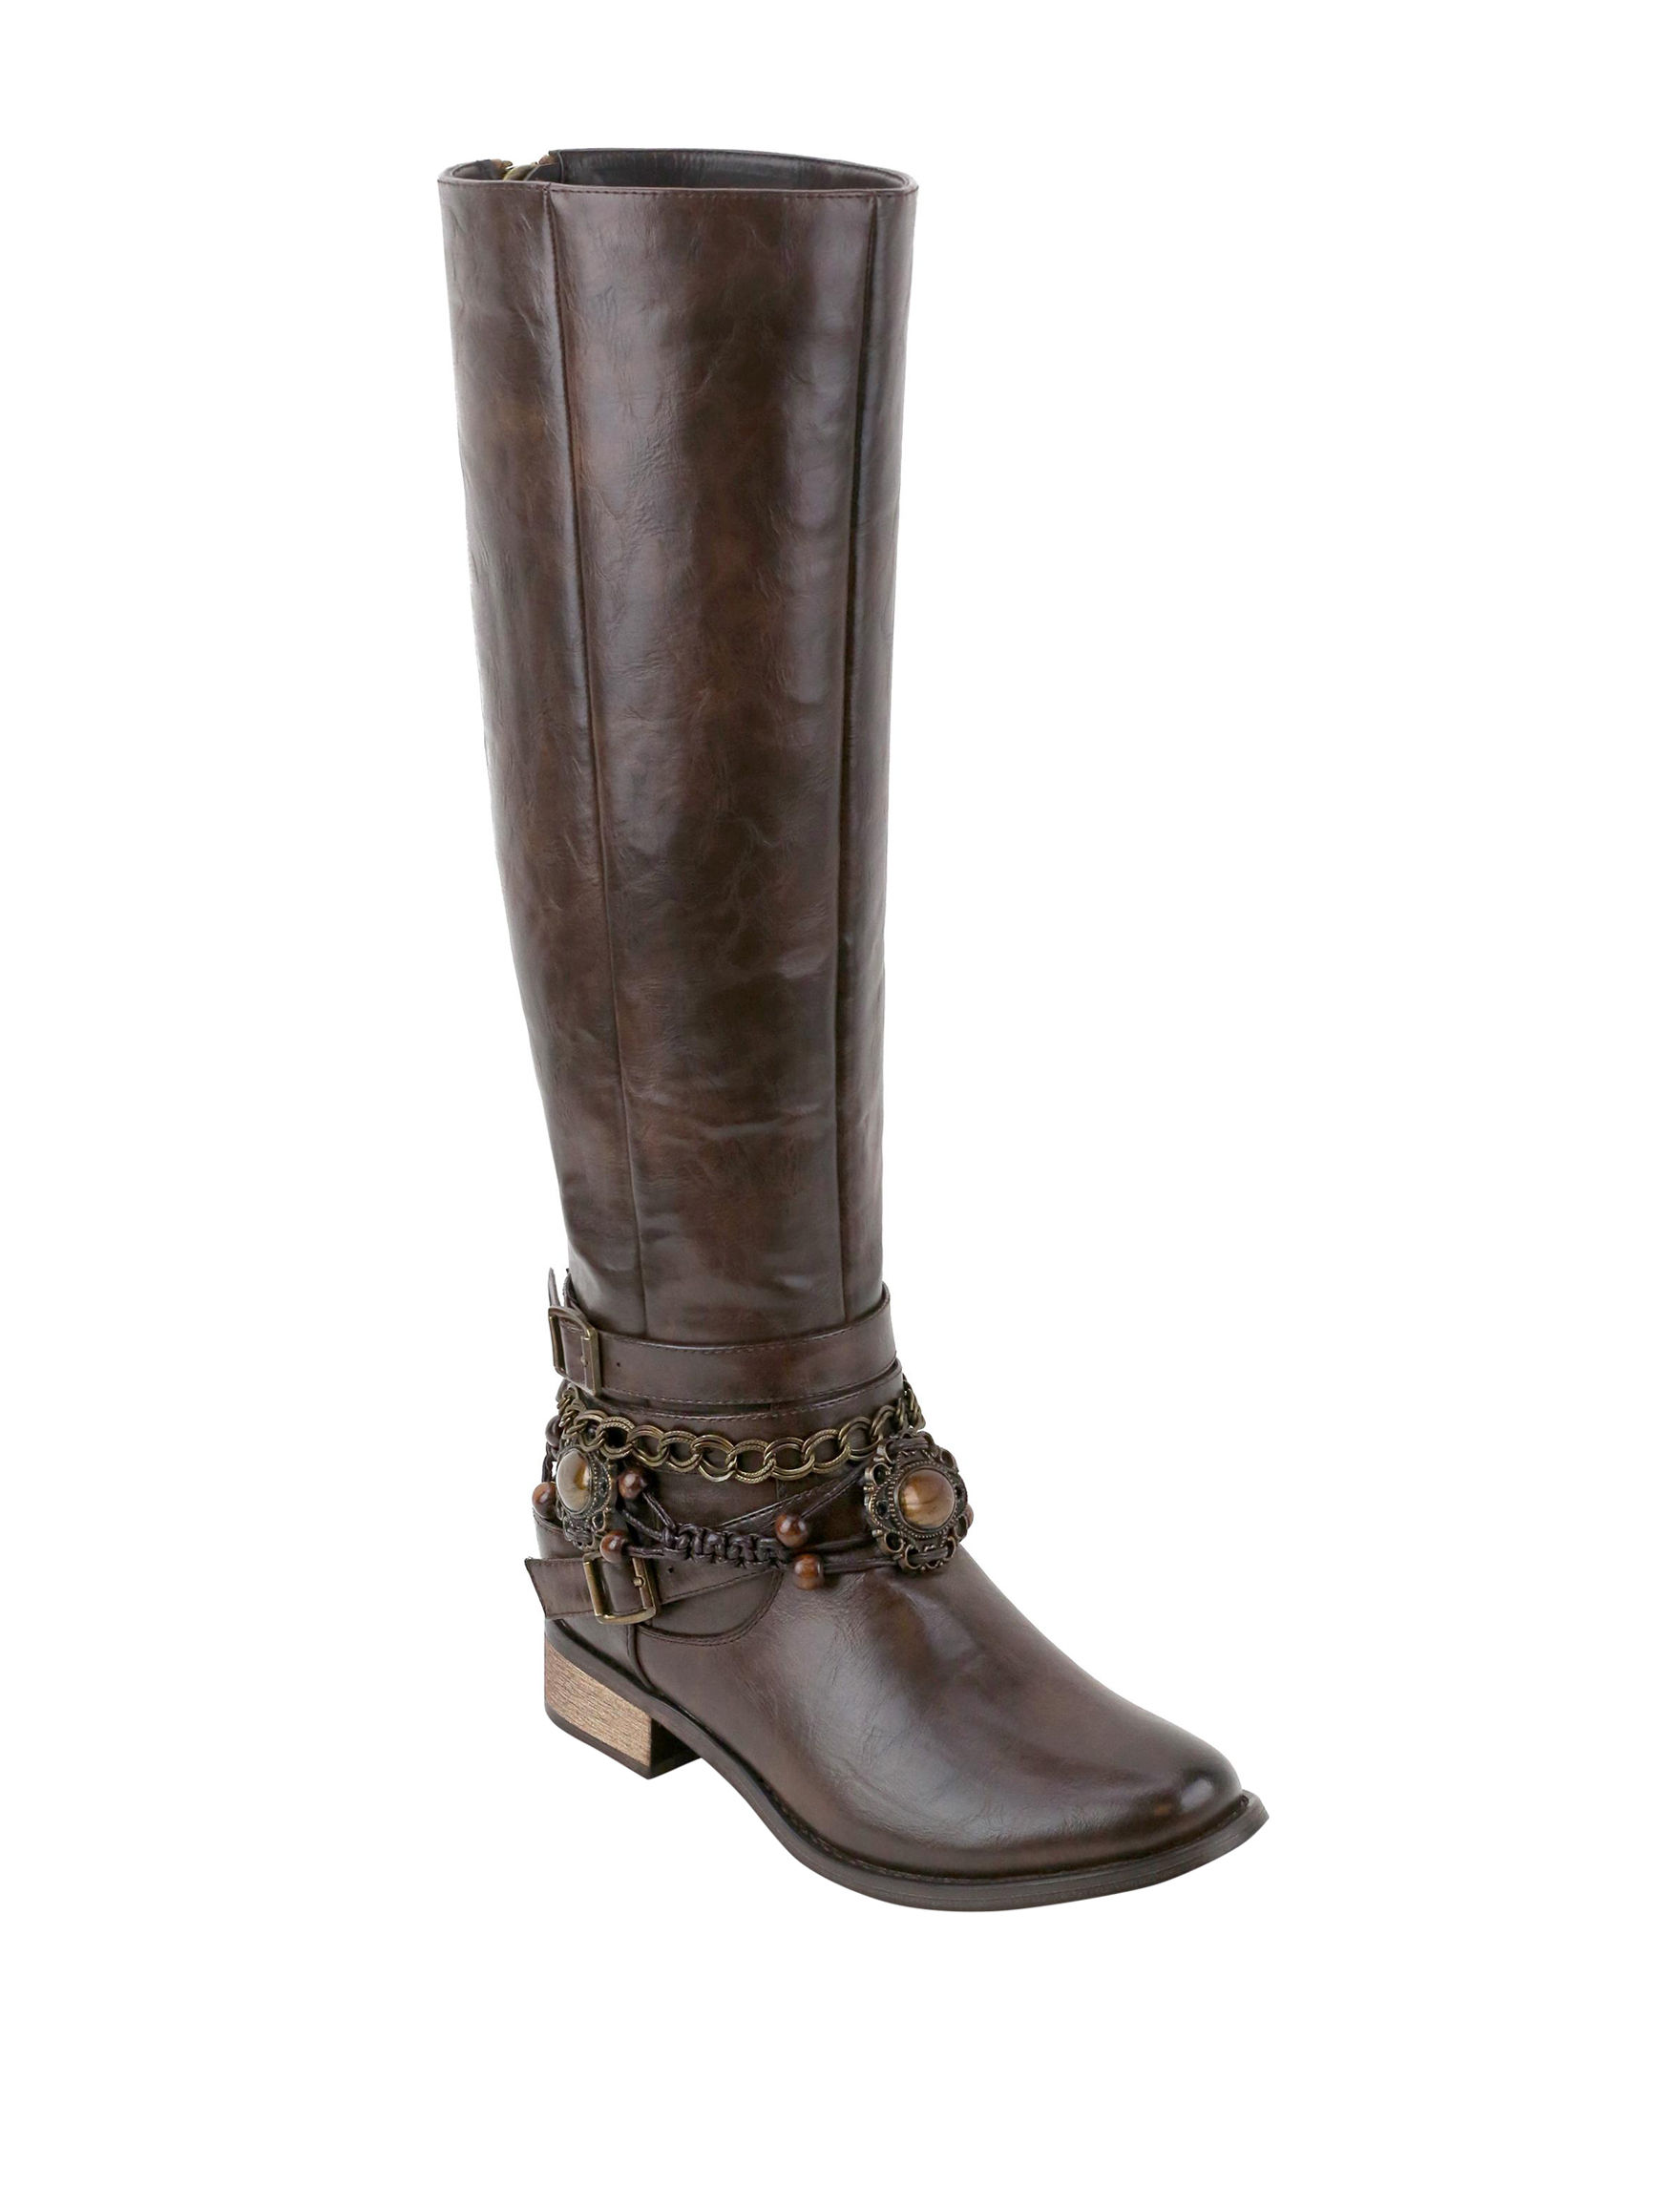 Olivia Miller Brown Riding Boots